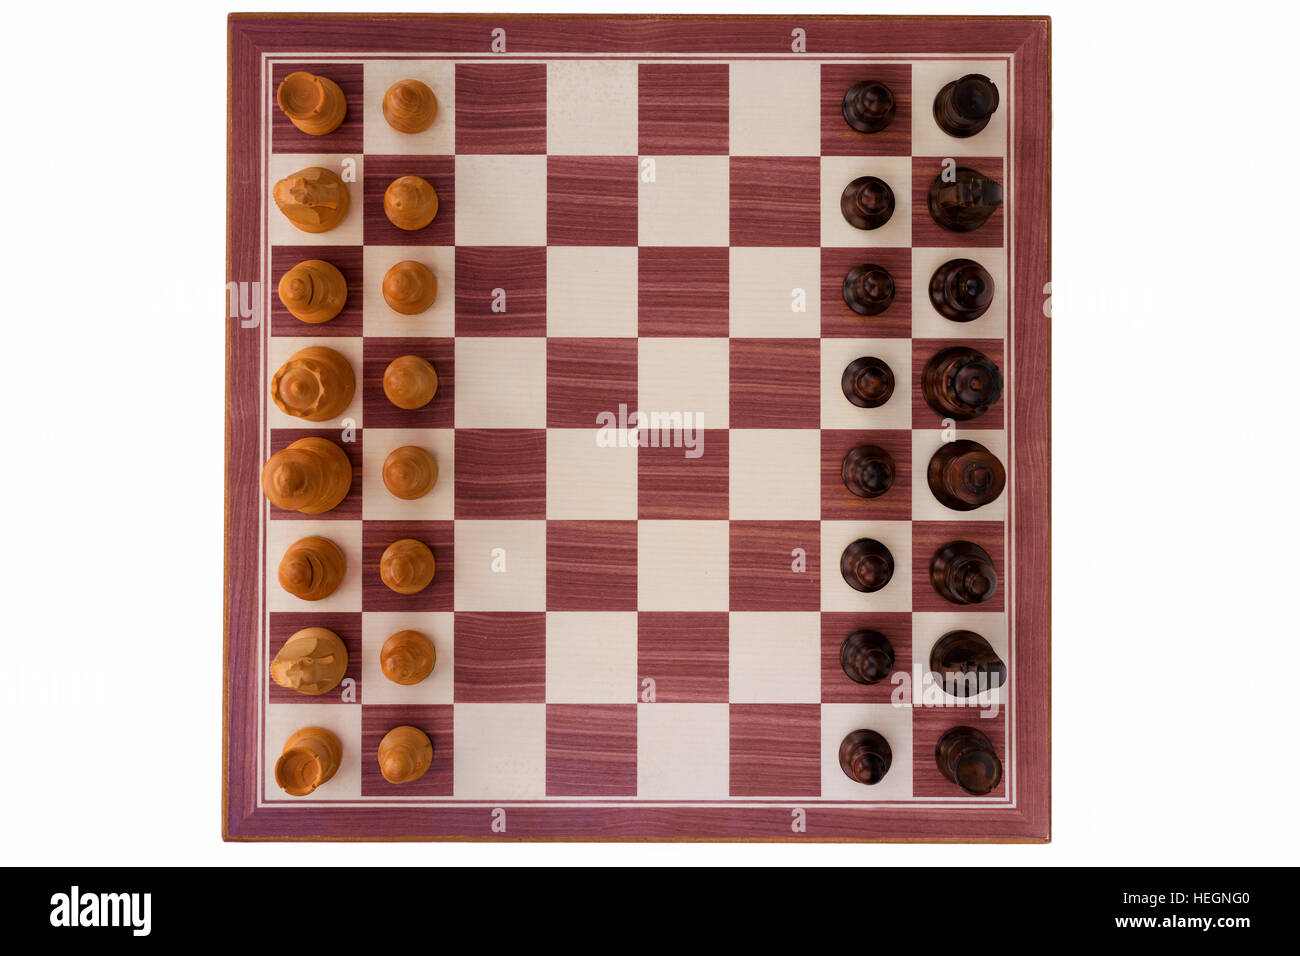 boxwood chessboard with all pieces on white background - Stock Image